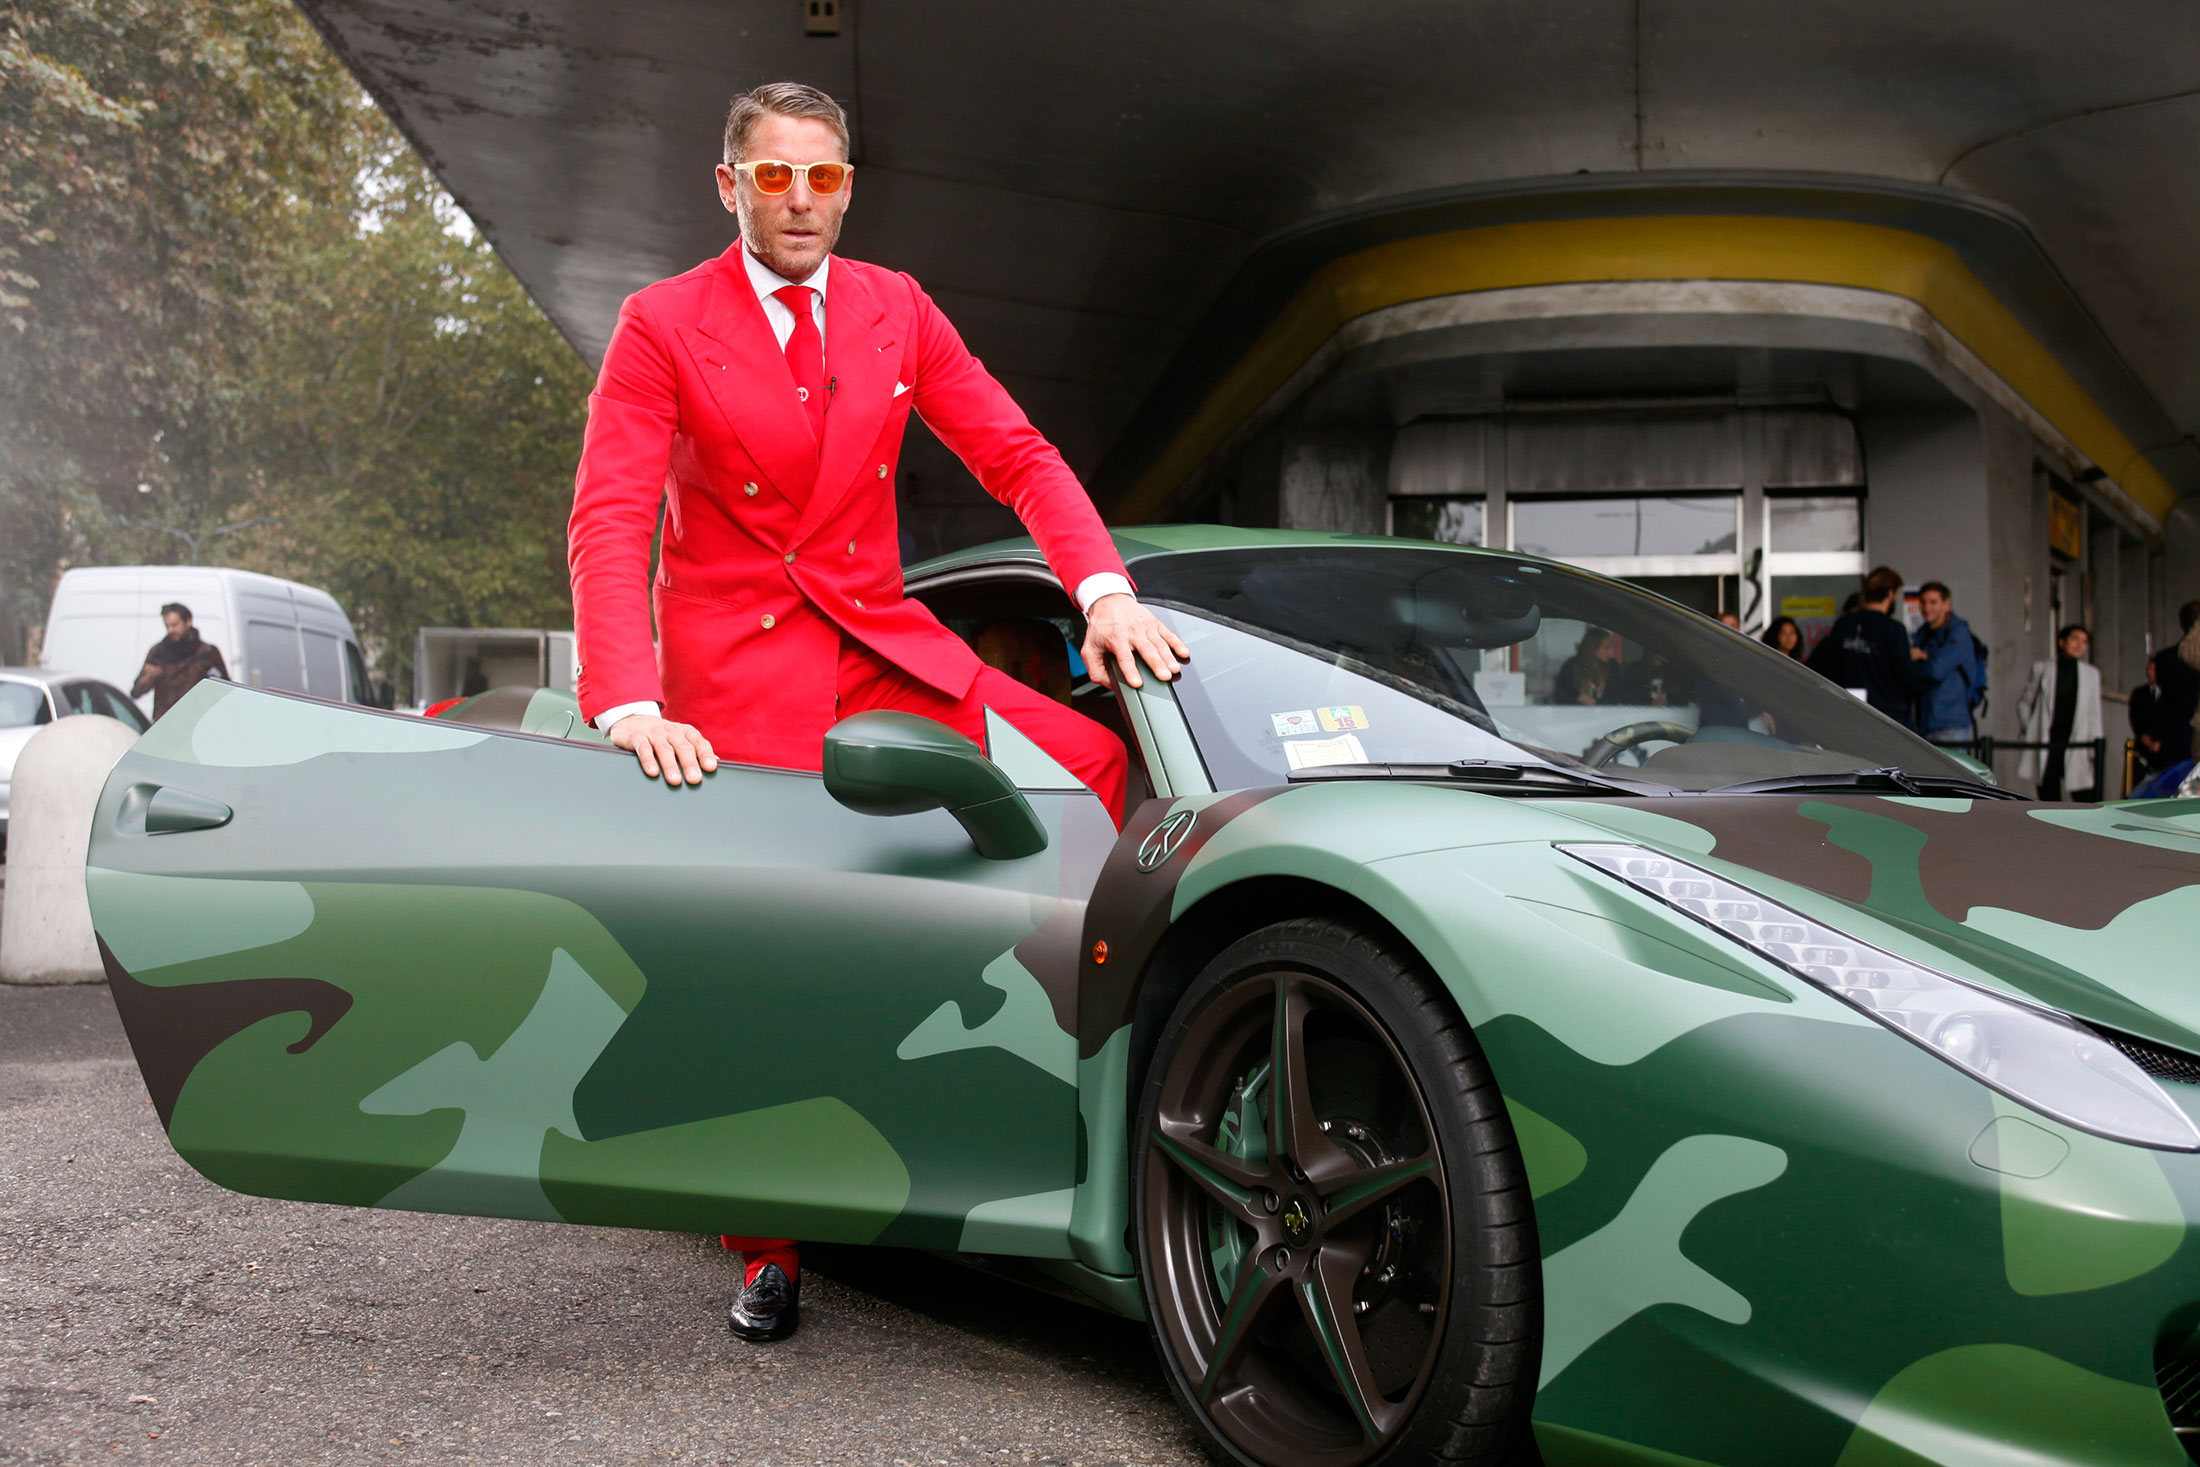 small garage business ideas - The Crazy Suits and Outrageous Cars at Lapo Elkann's